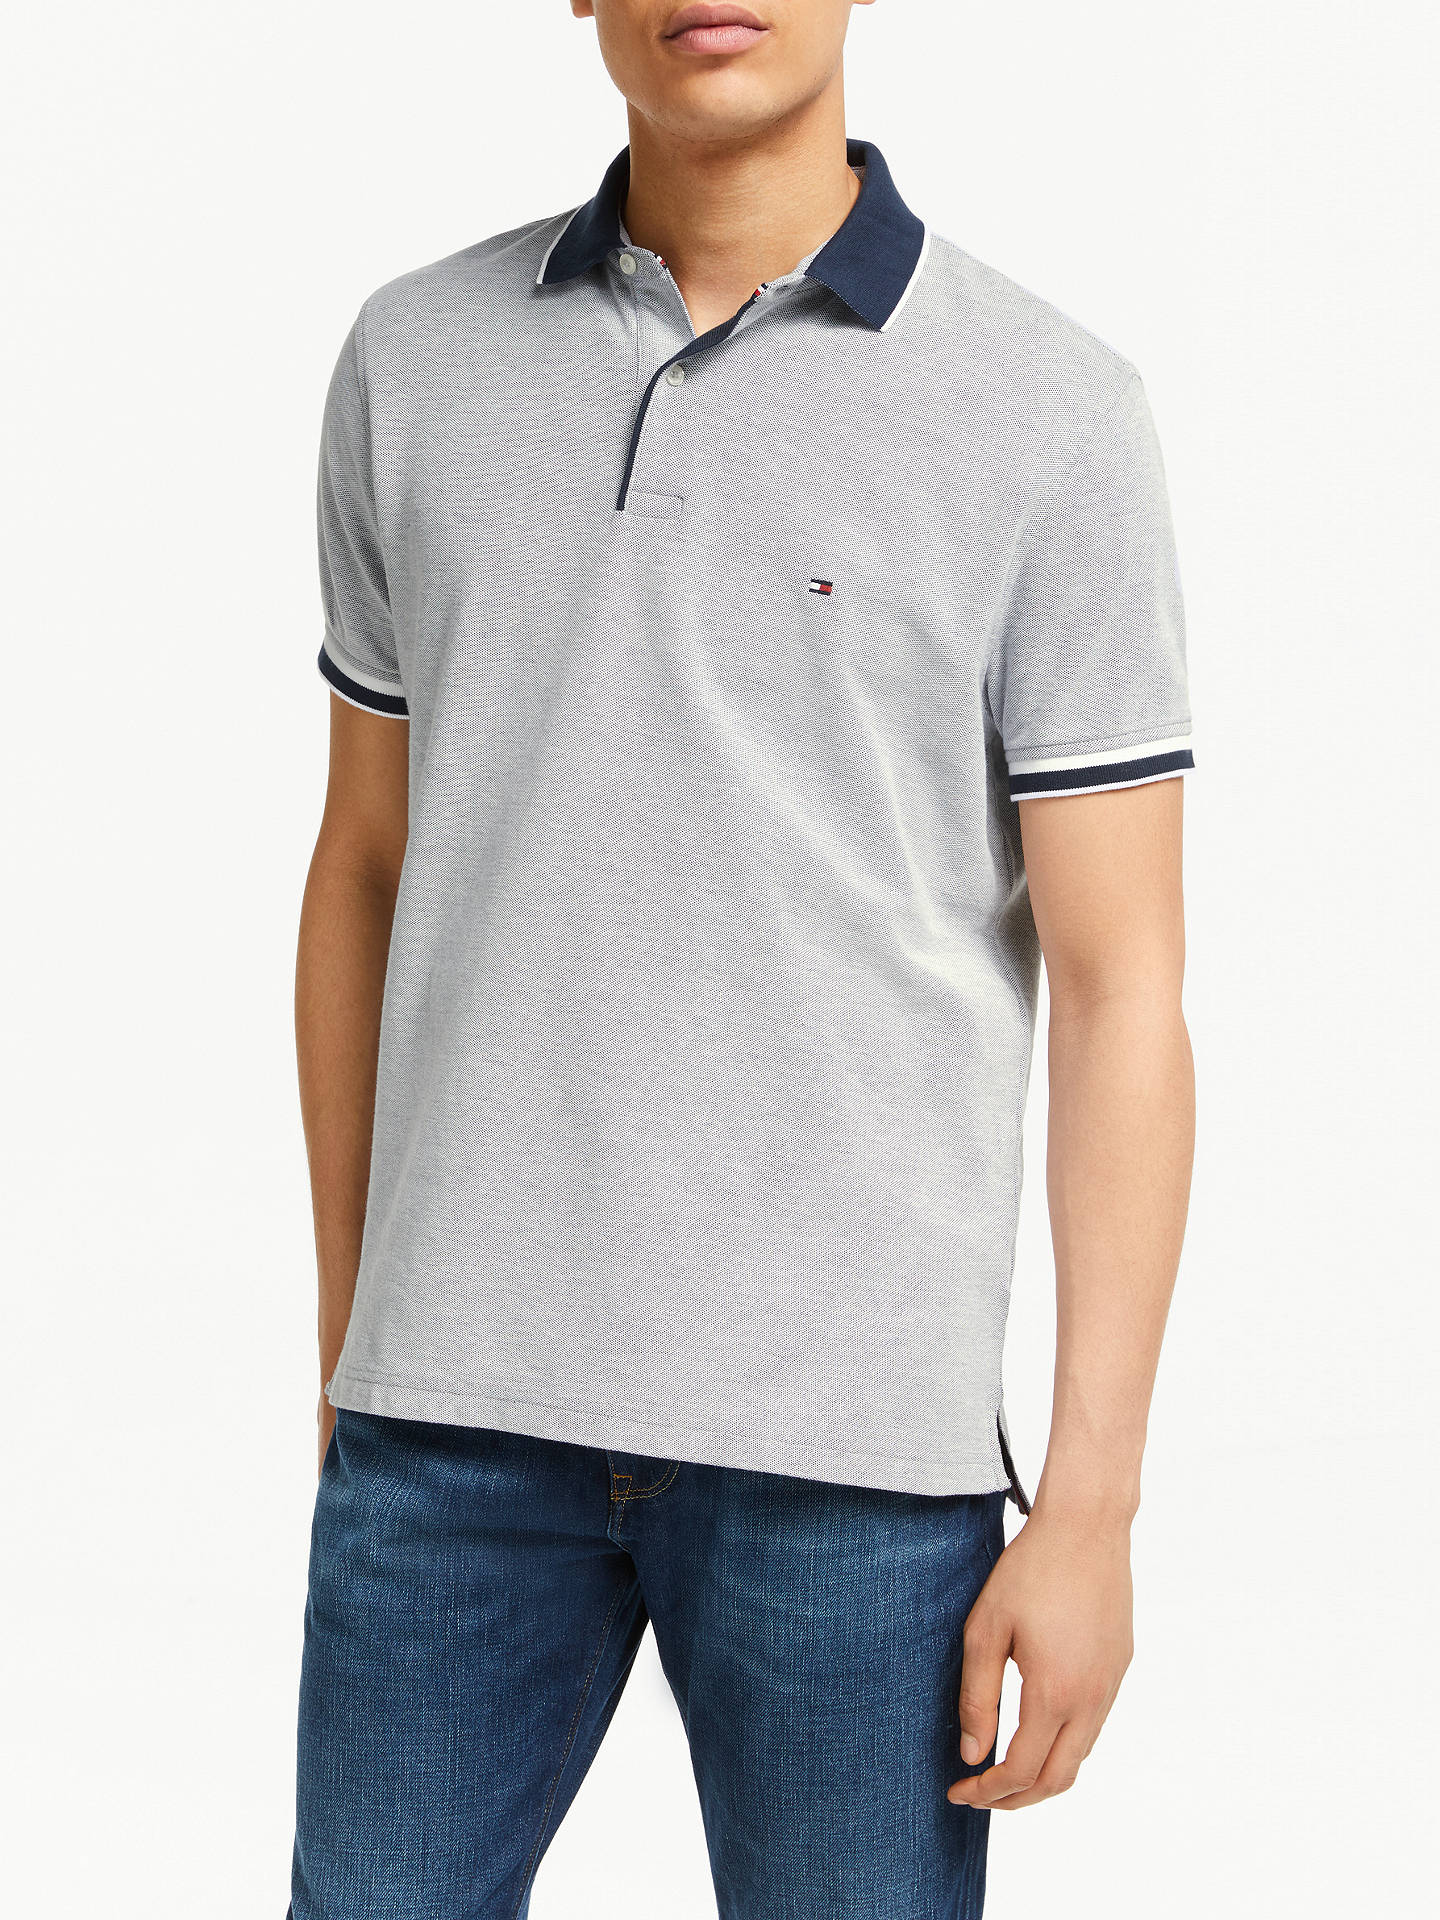 31566fde Buy Tommy Hilfiger Oxford Cotton Slim Polo Shirt, Sky Captain, S Online at  johnlewis ...